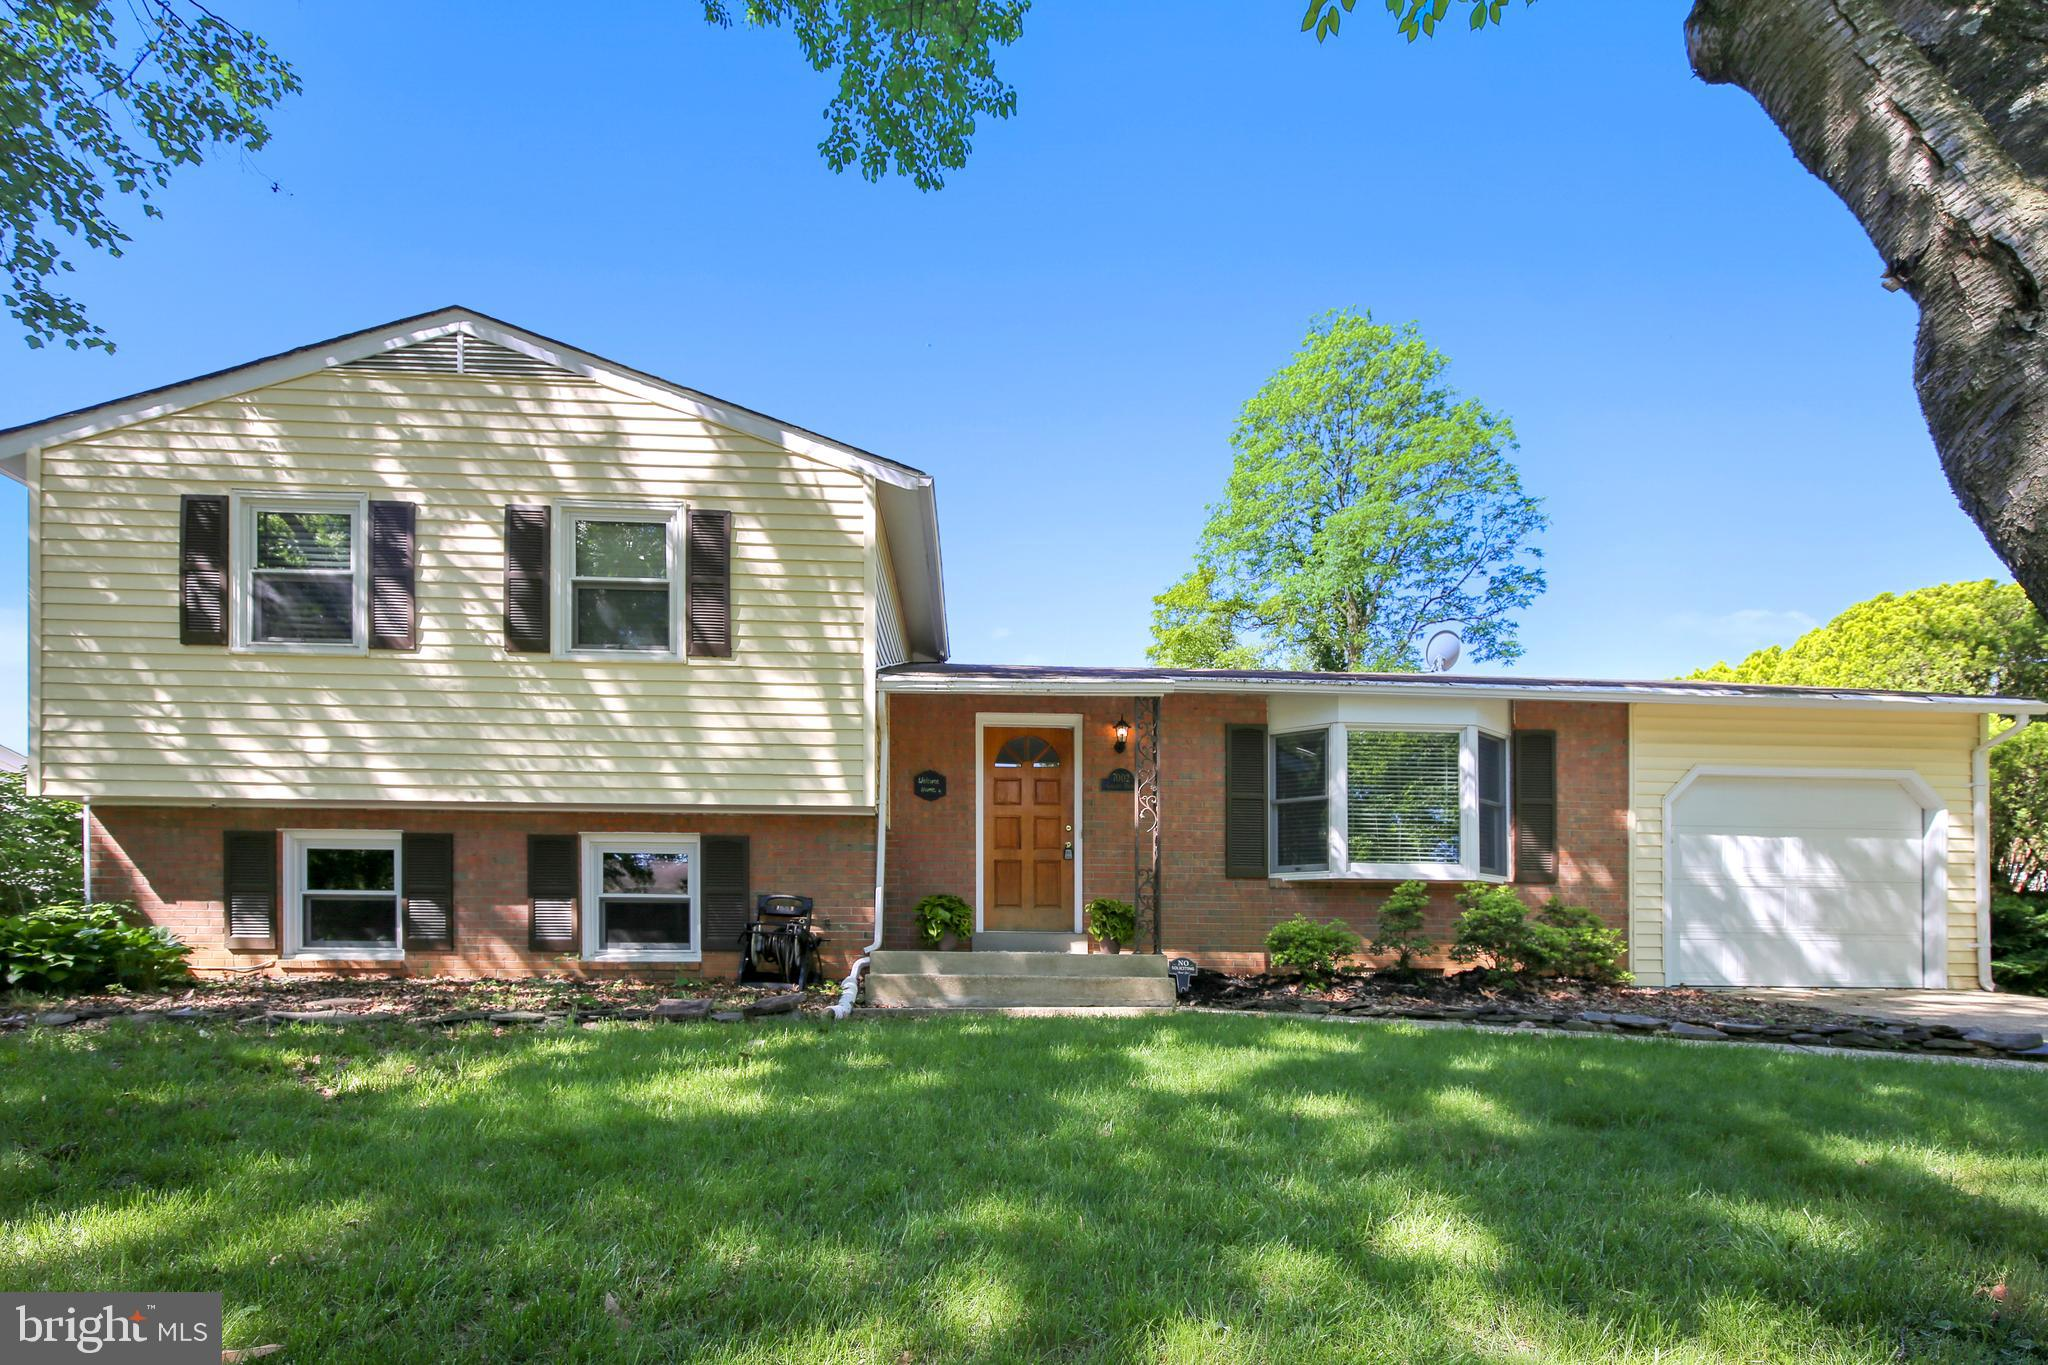 Welcome to this Beautiful Upgraded & Expanded West Springfield Split Level * Five Bedrooms - Four on Upper Level, One on Lower Level * Fresh Paint Throughout * Gleaming Wood Floors * New Deck Surfacing * Huge Kitchen Upgrade/Expansion * New Granite Counters * Upgraded Bathrooms * One Car Garage * Fully Fenced Backyard * Community Pool Membership Available * Minutes to the Parkway & 395 * Slug Lots Close * Lots of Commuting Options * Owner/Agent Please Call With Questions